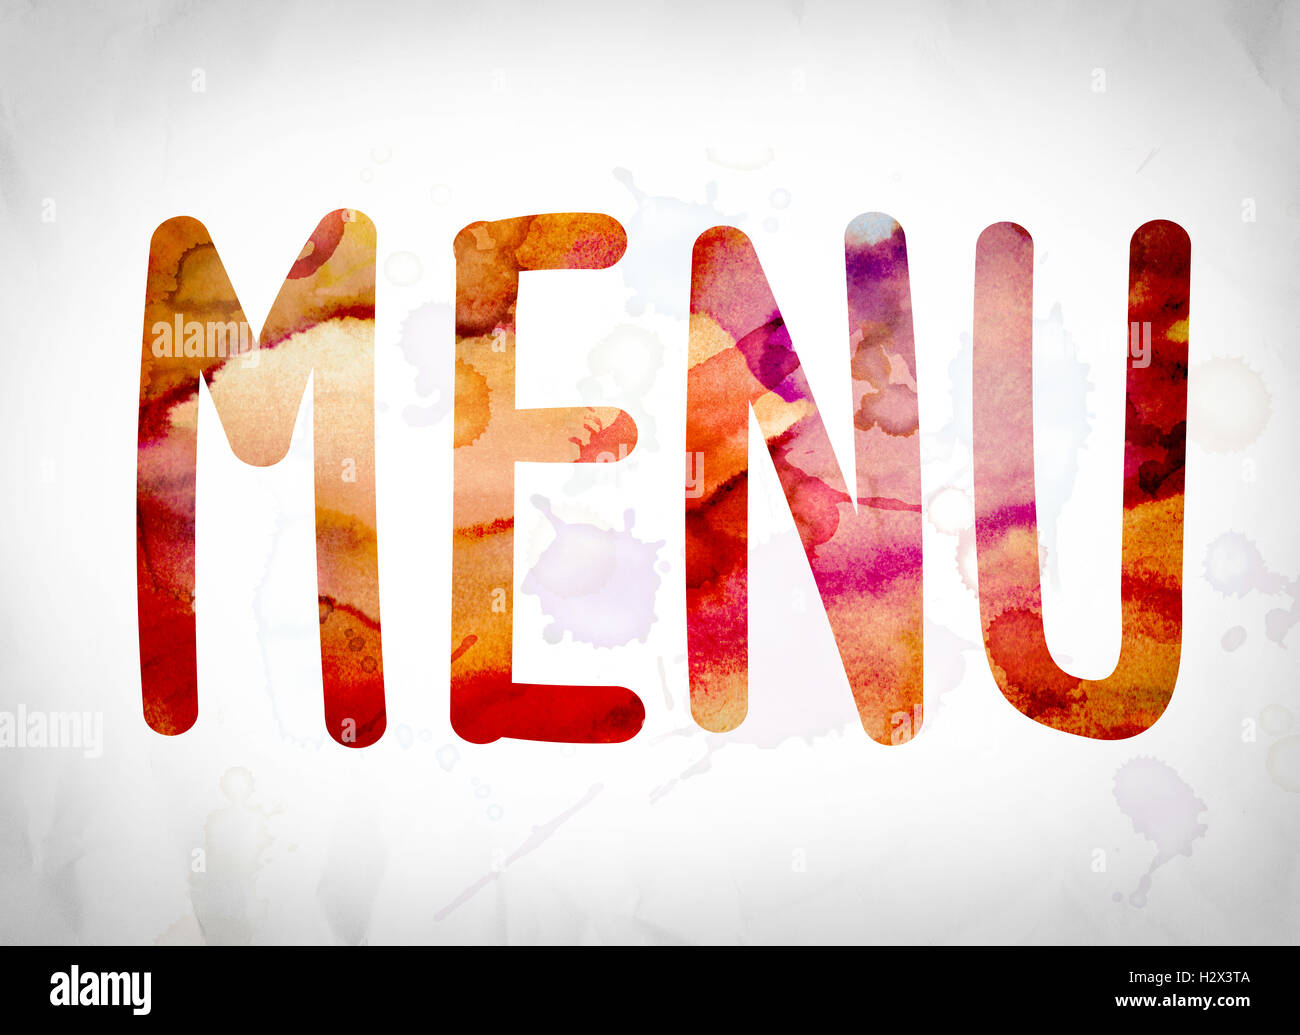 "the word ""menu"" written in watercolor washes over a white paper"